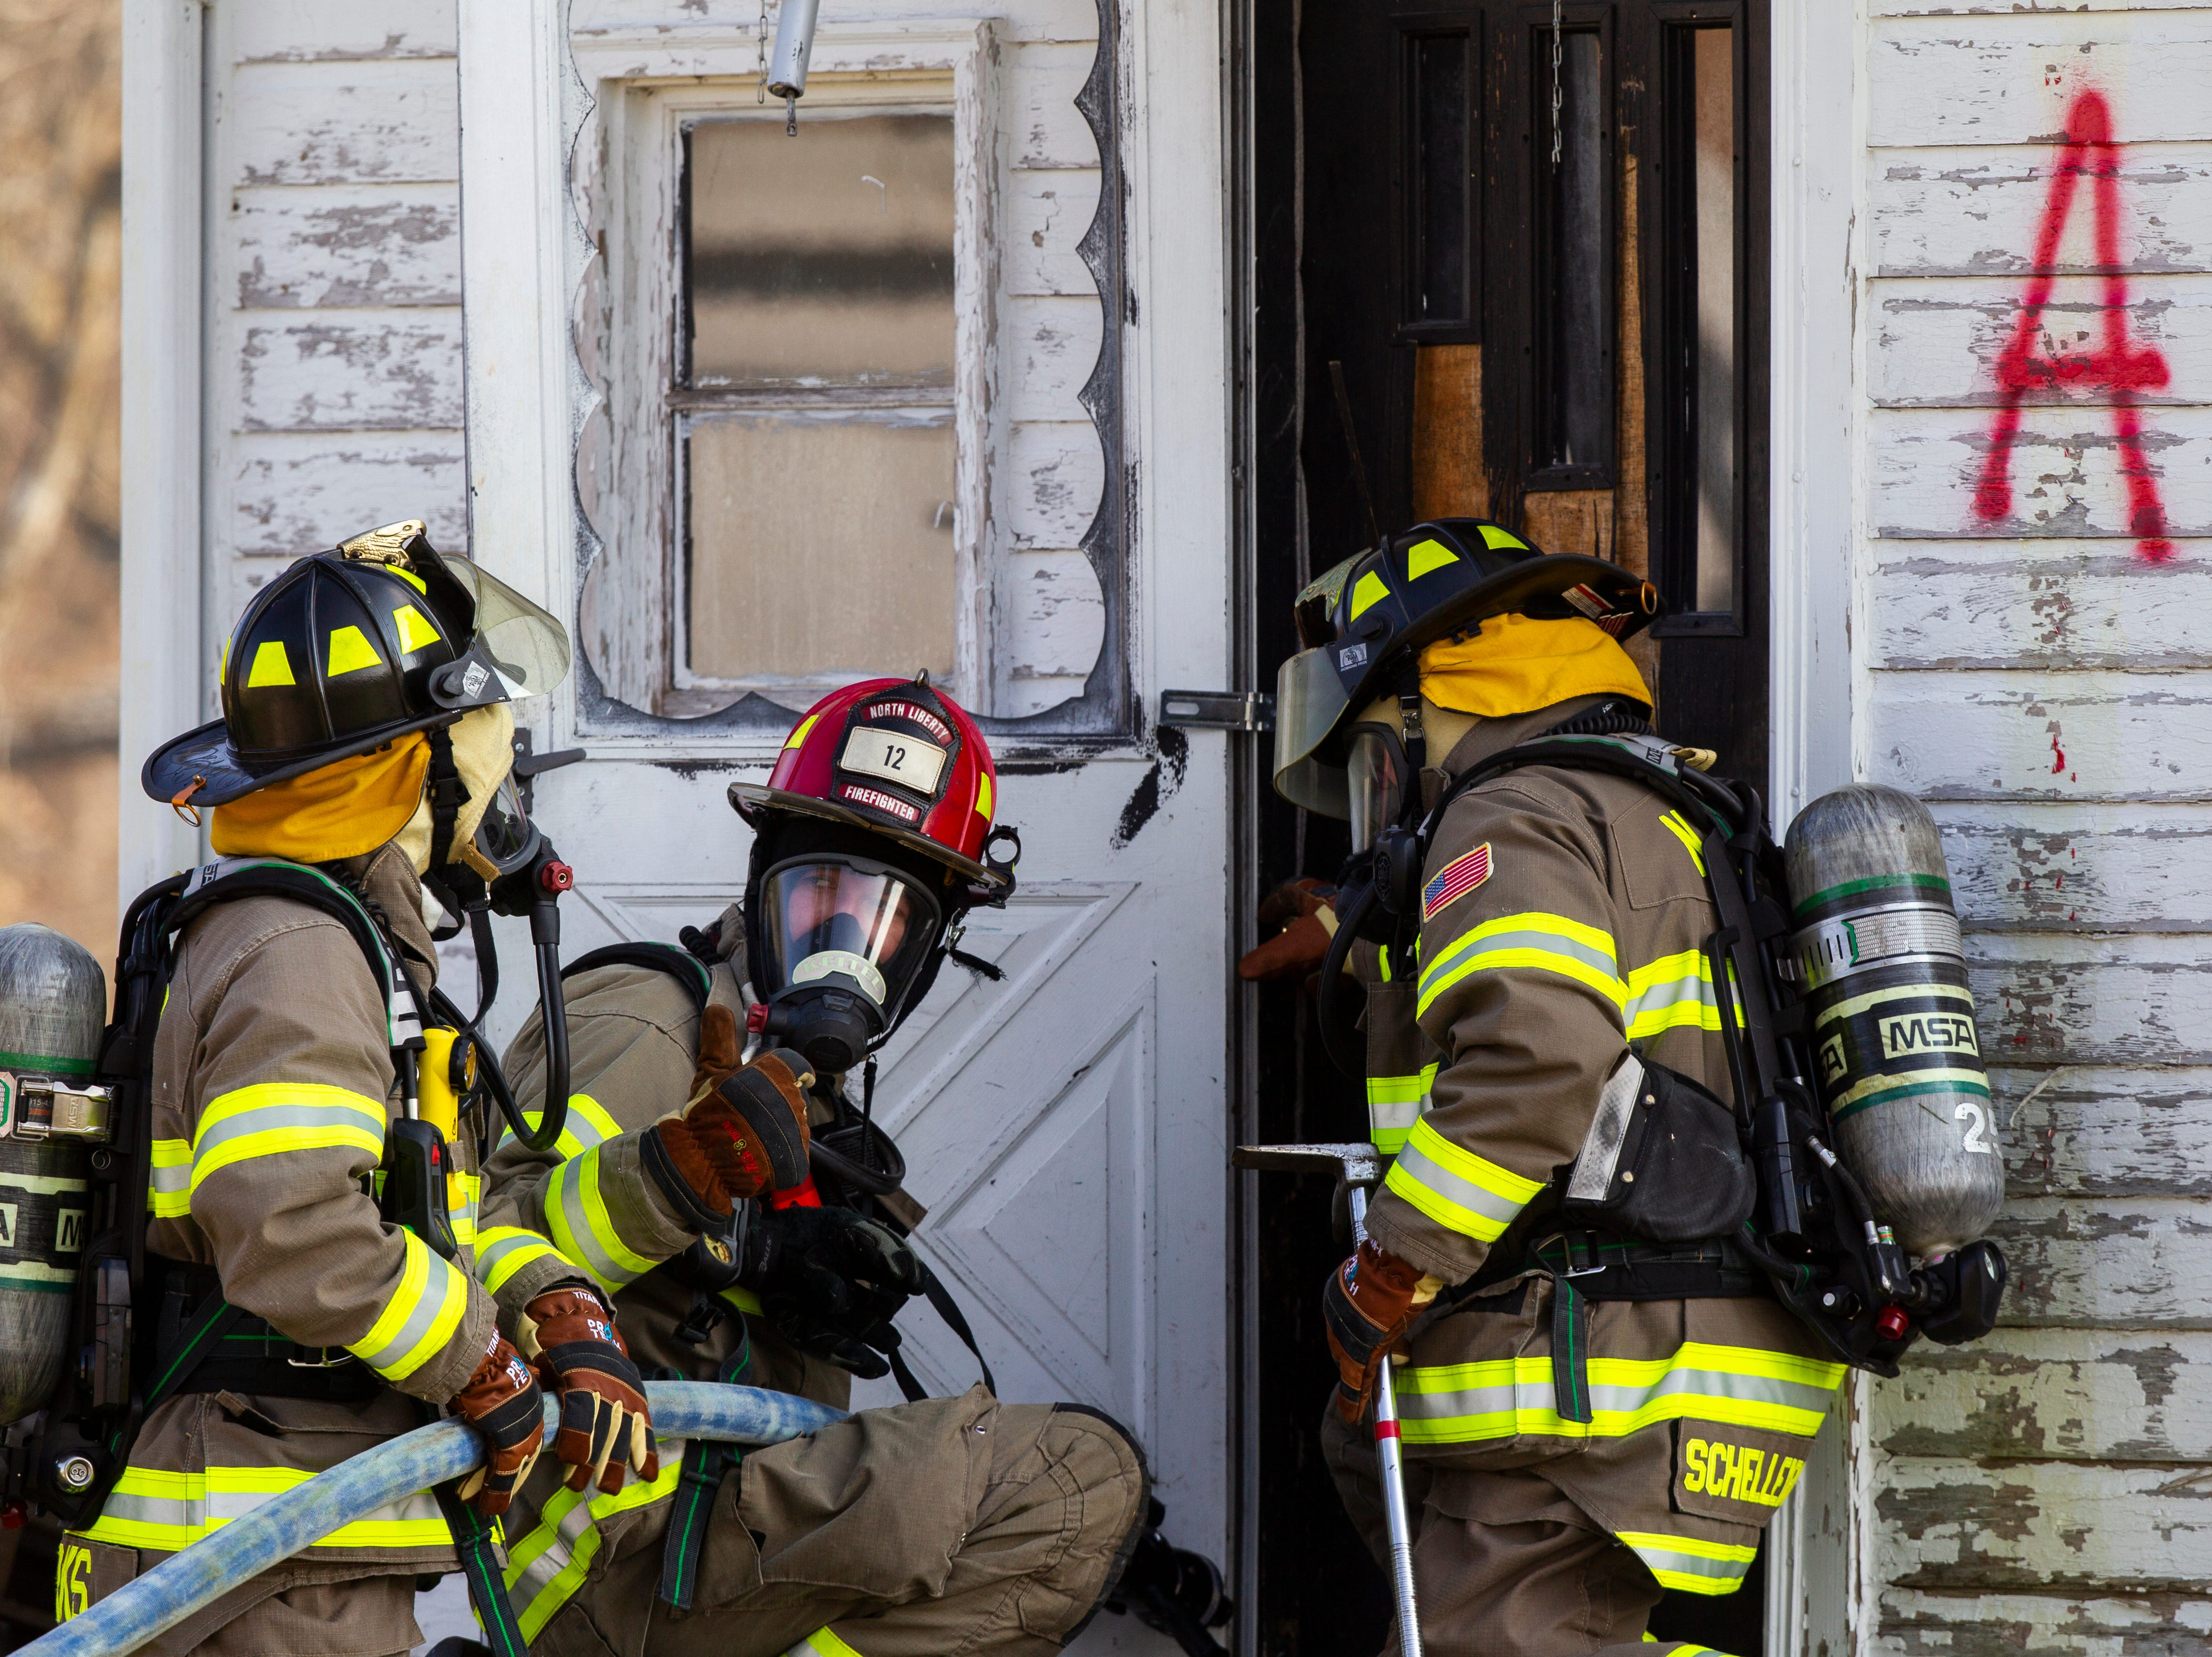 North Liberty Fire Department conducts a fire training exercise of a farm house on Saturday, Oct. 27, 2018, on the east side of Liberty High School in North Liberty.